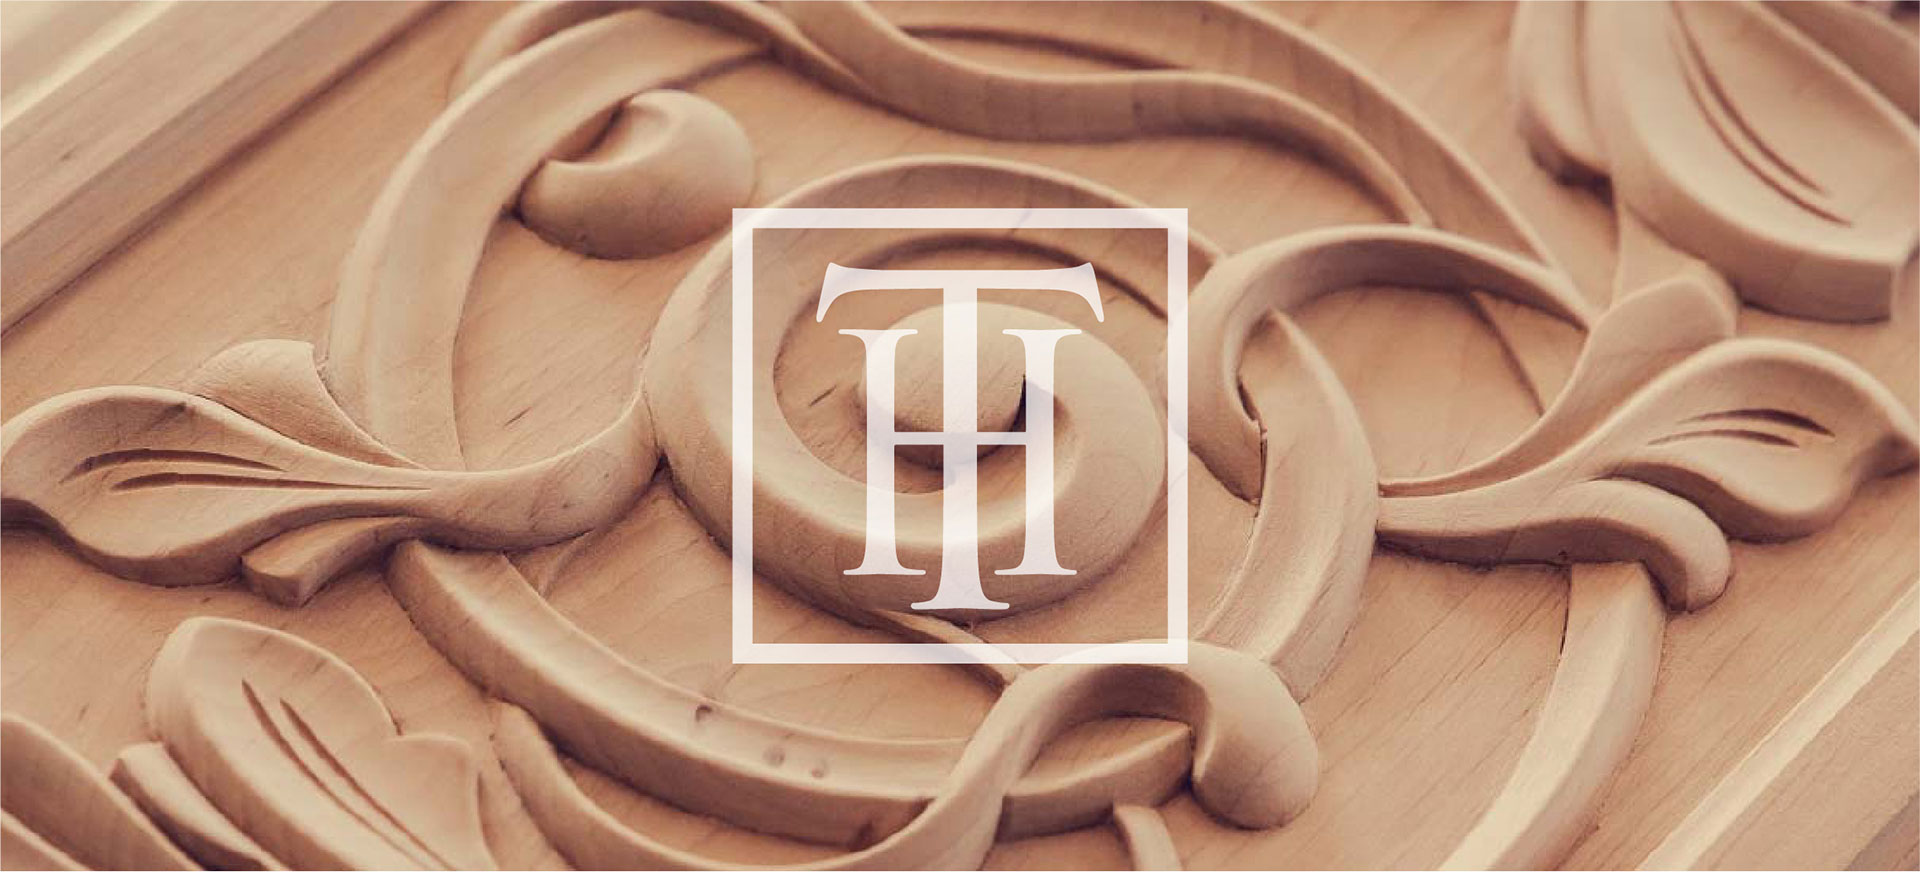 Timberland Homes: Concierge Service